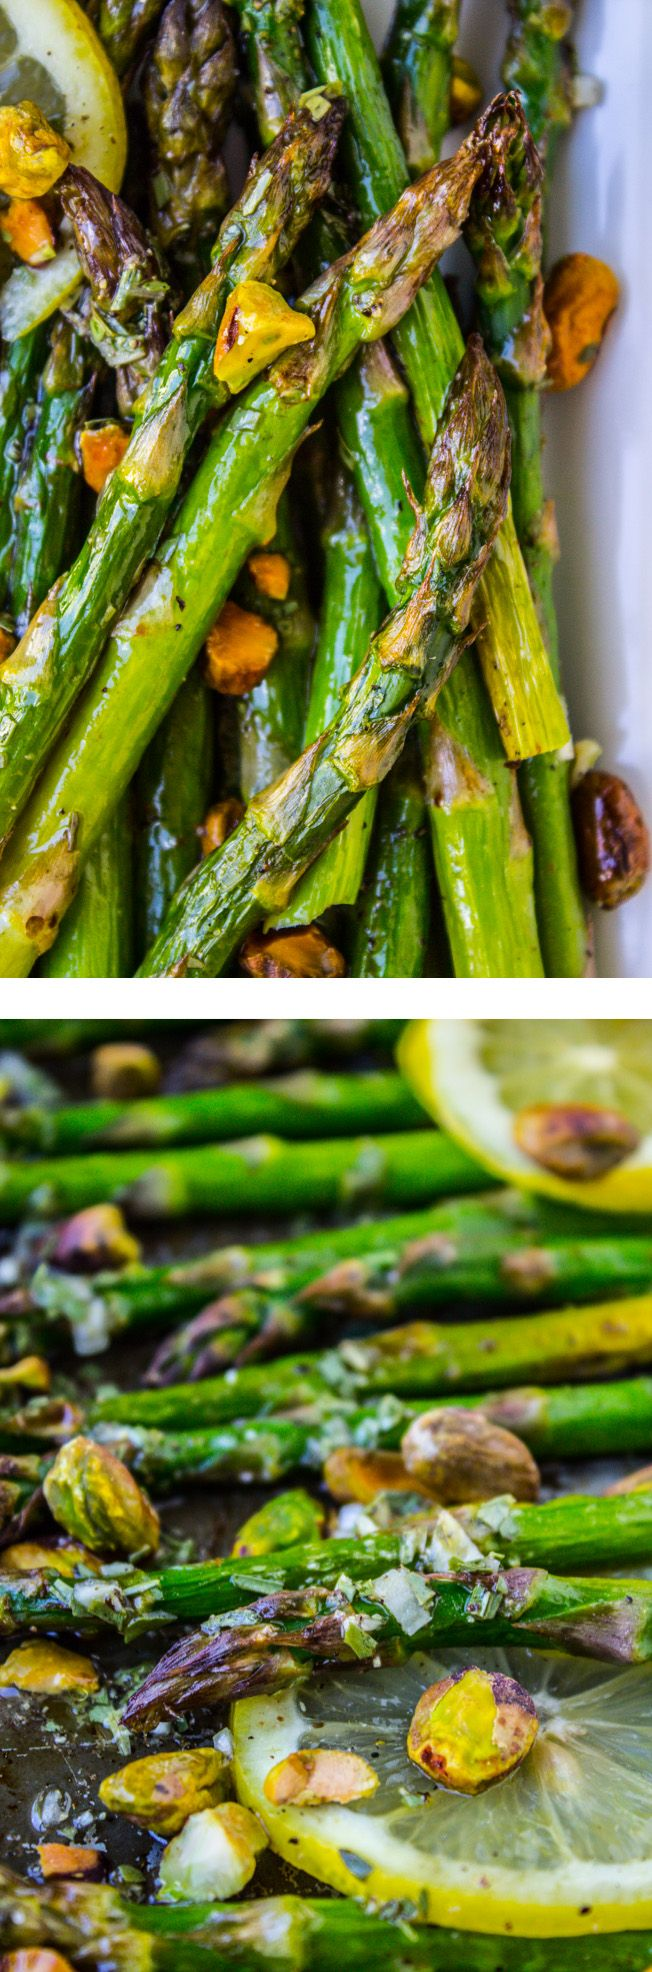 This easy asparagus recipe for Easter takes about 15 minutes to throw together. Olive oil keeps it healthy, pistachios and lemon make it memorable.